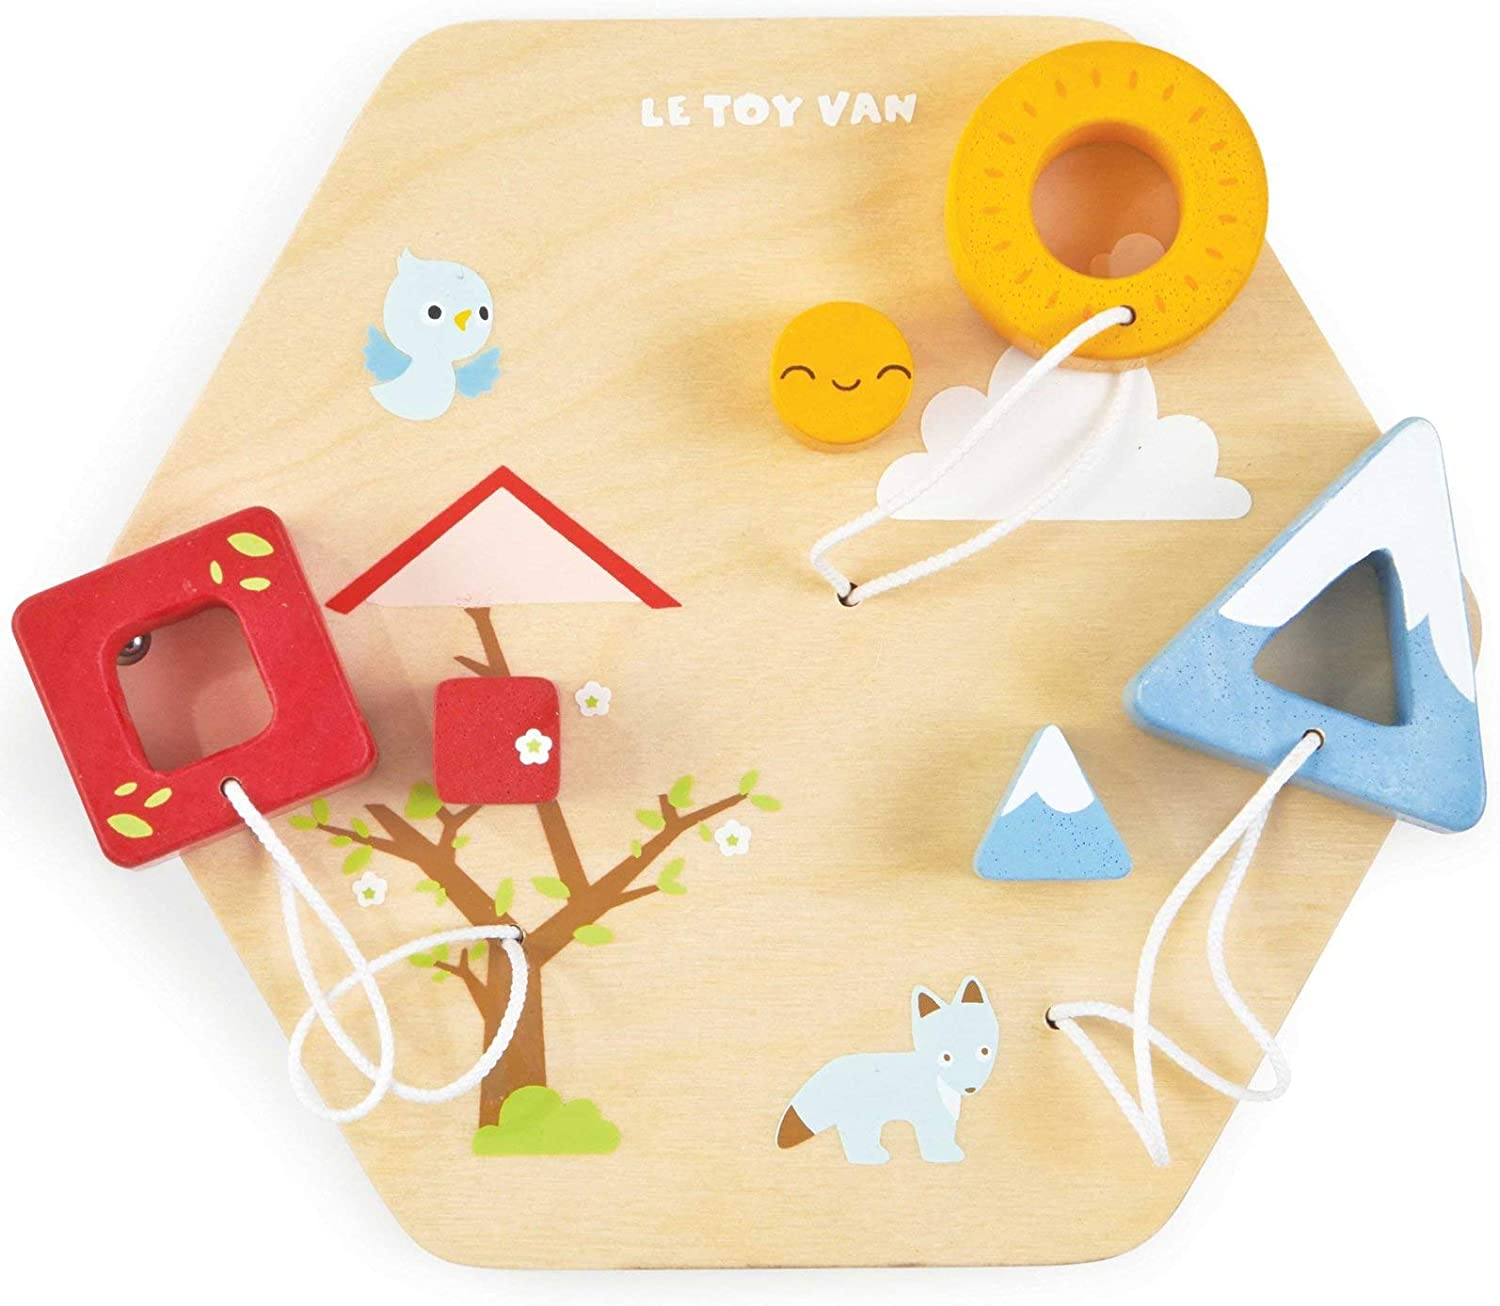 Le Toy Van Xylophone Activity Tile Premium Wooden Toys for Kids Ages 18 Months /& Up